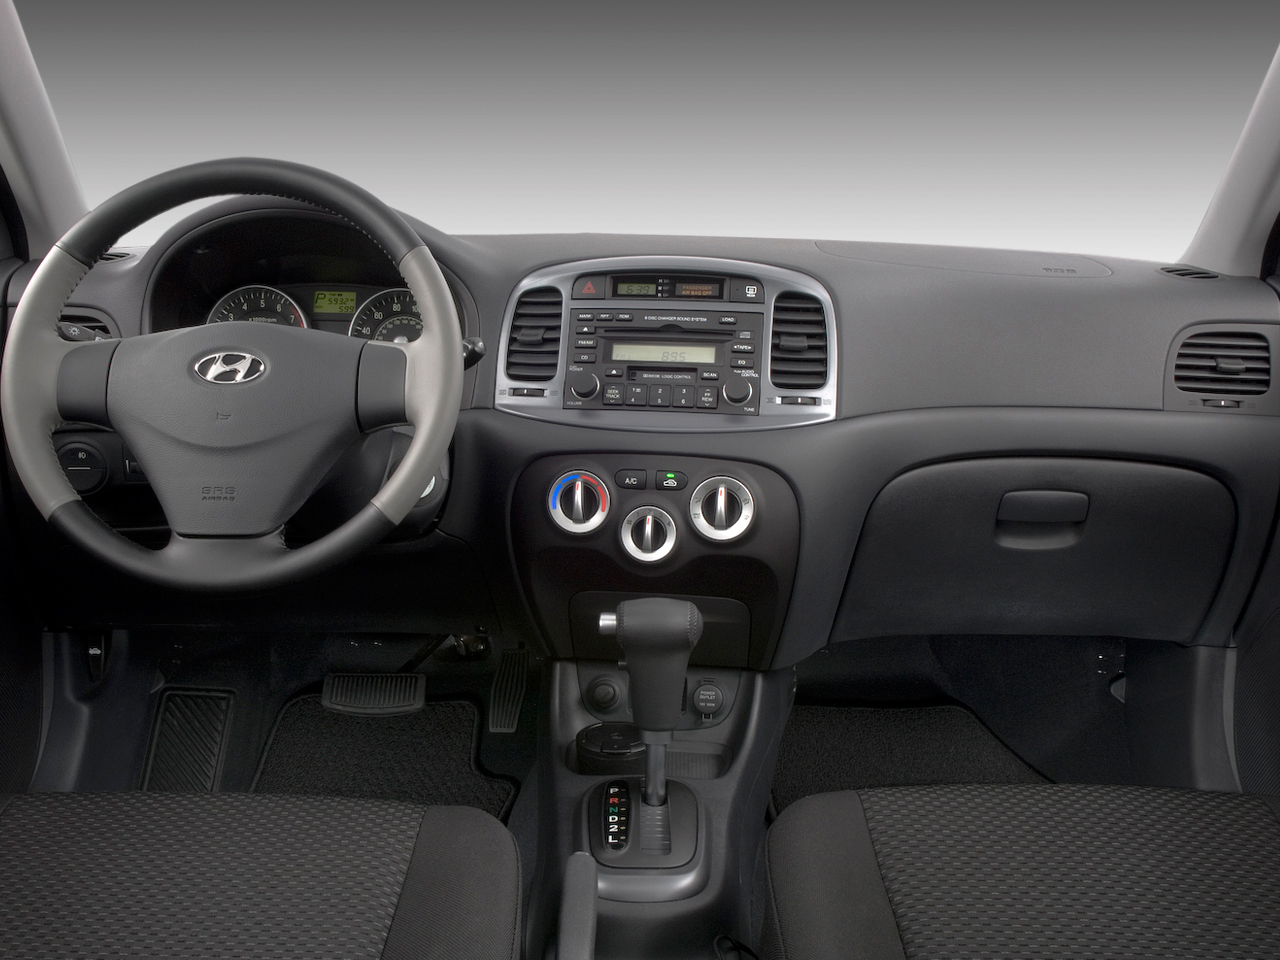 2009 Hyundai Accent Information And Photos Neo Drive